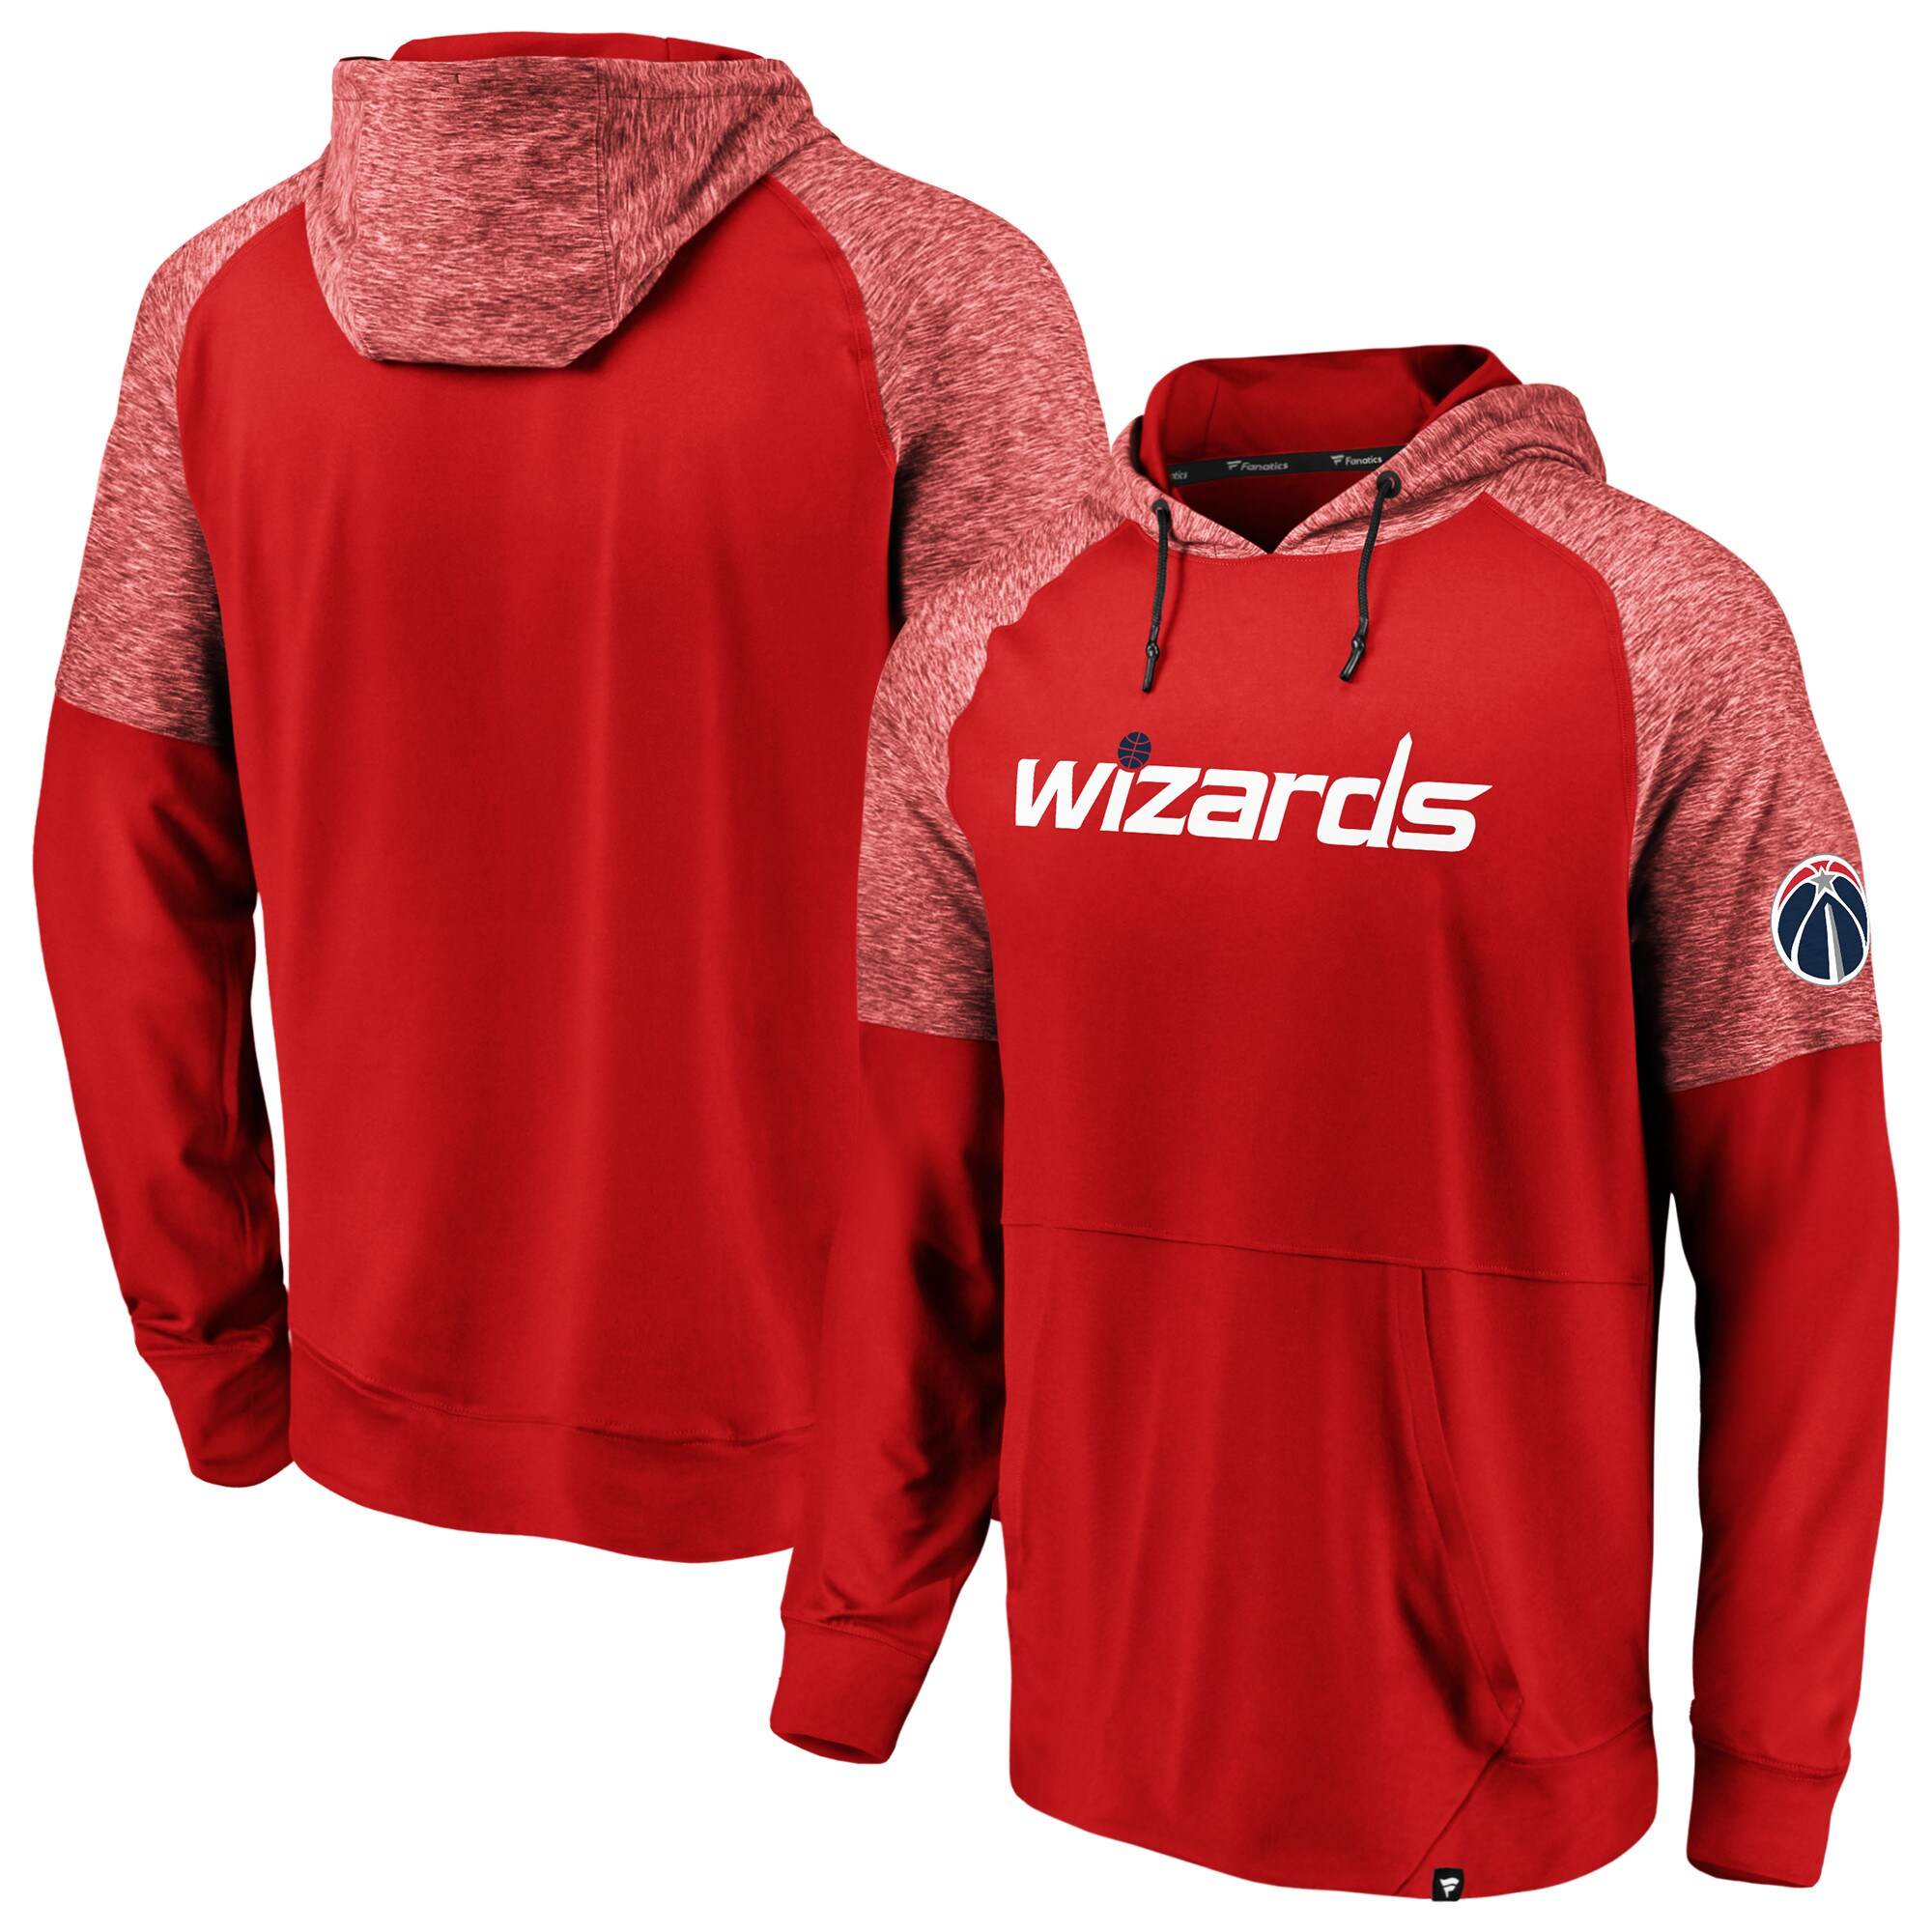 Washington Wizards Fanatics Branded Made to Move Static Performance Raglan Pullover Hoodie - Red/Heathered Red